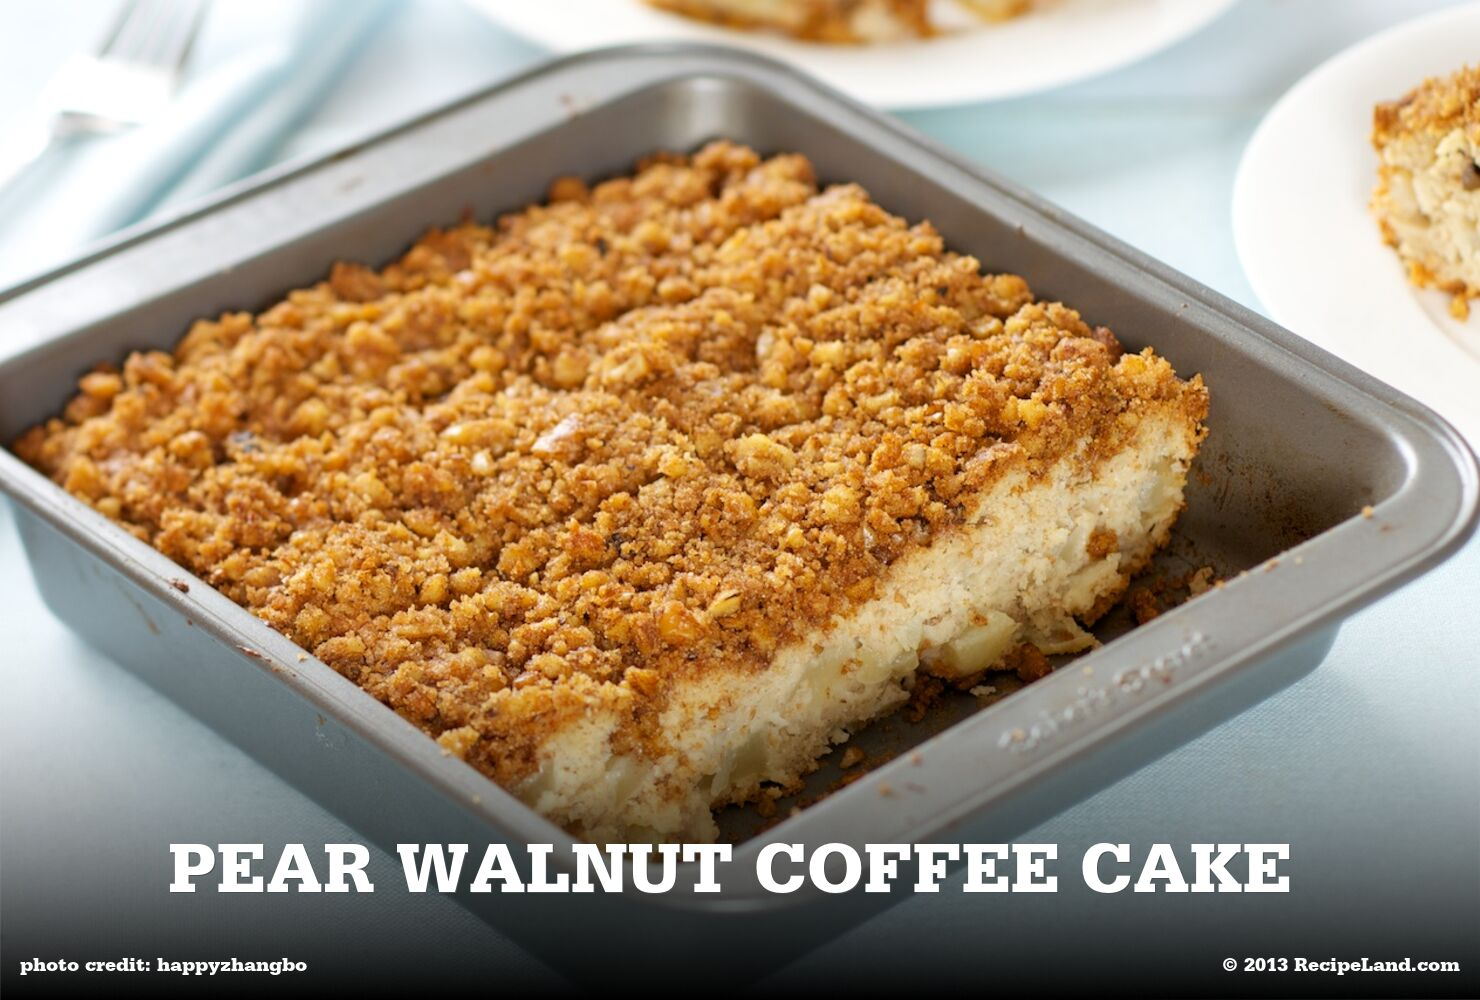 Pear Walnut Coffee Cake